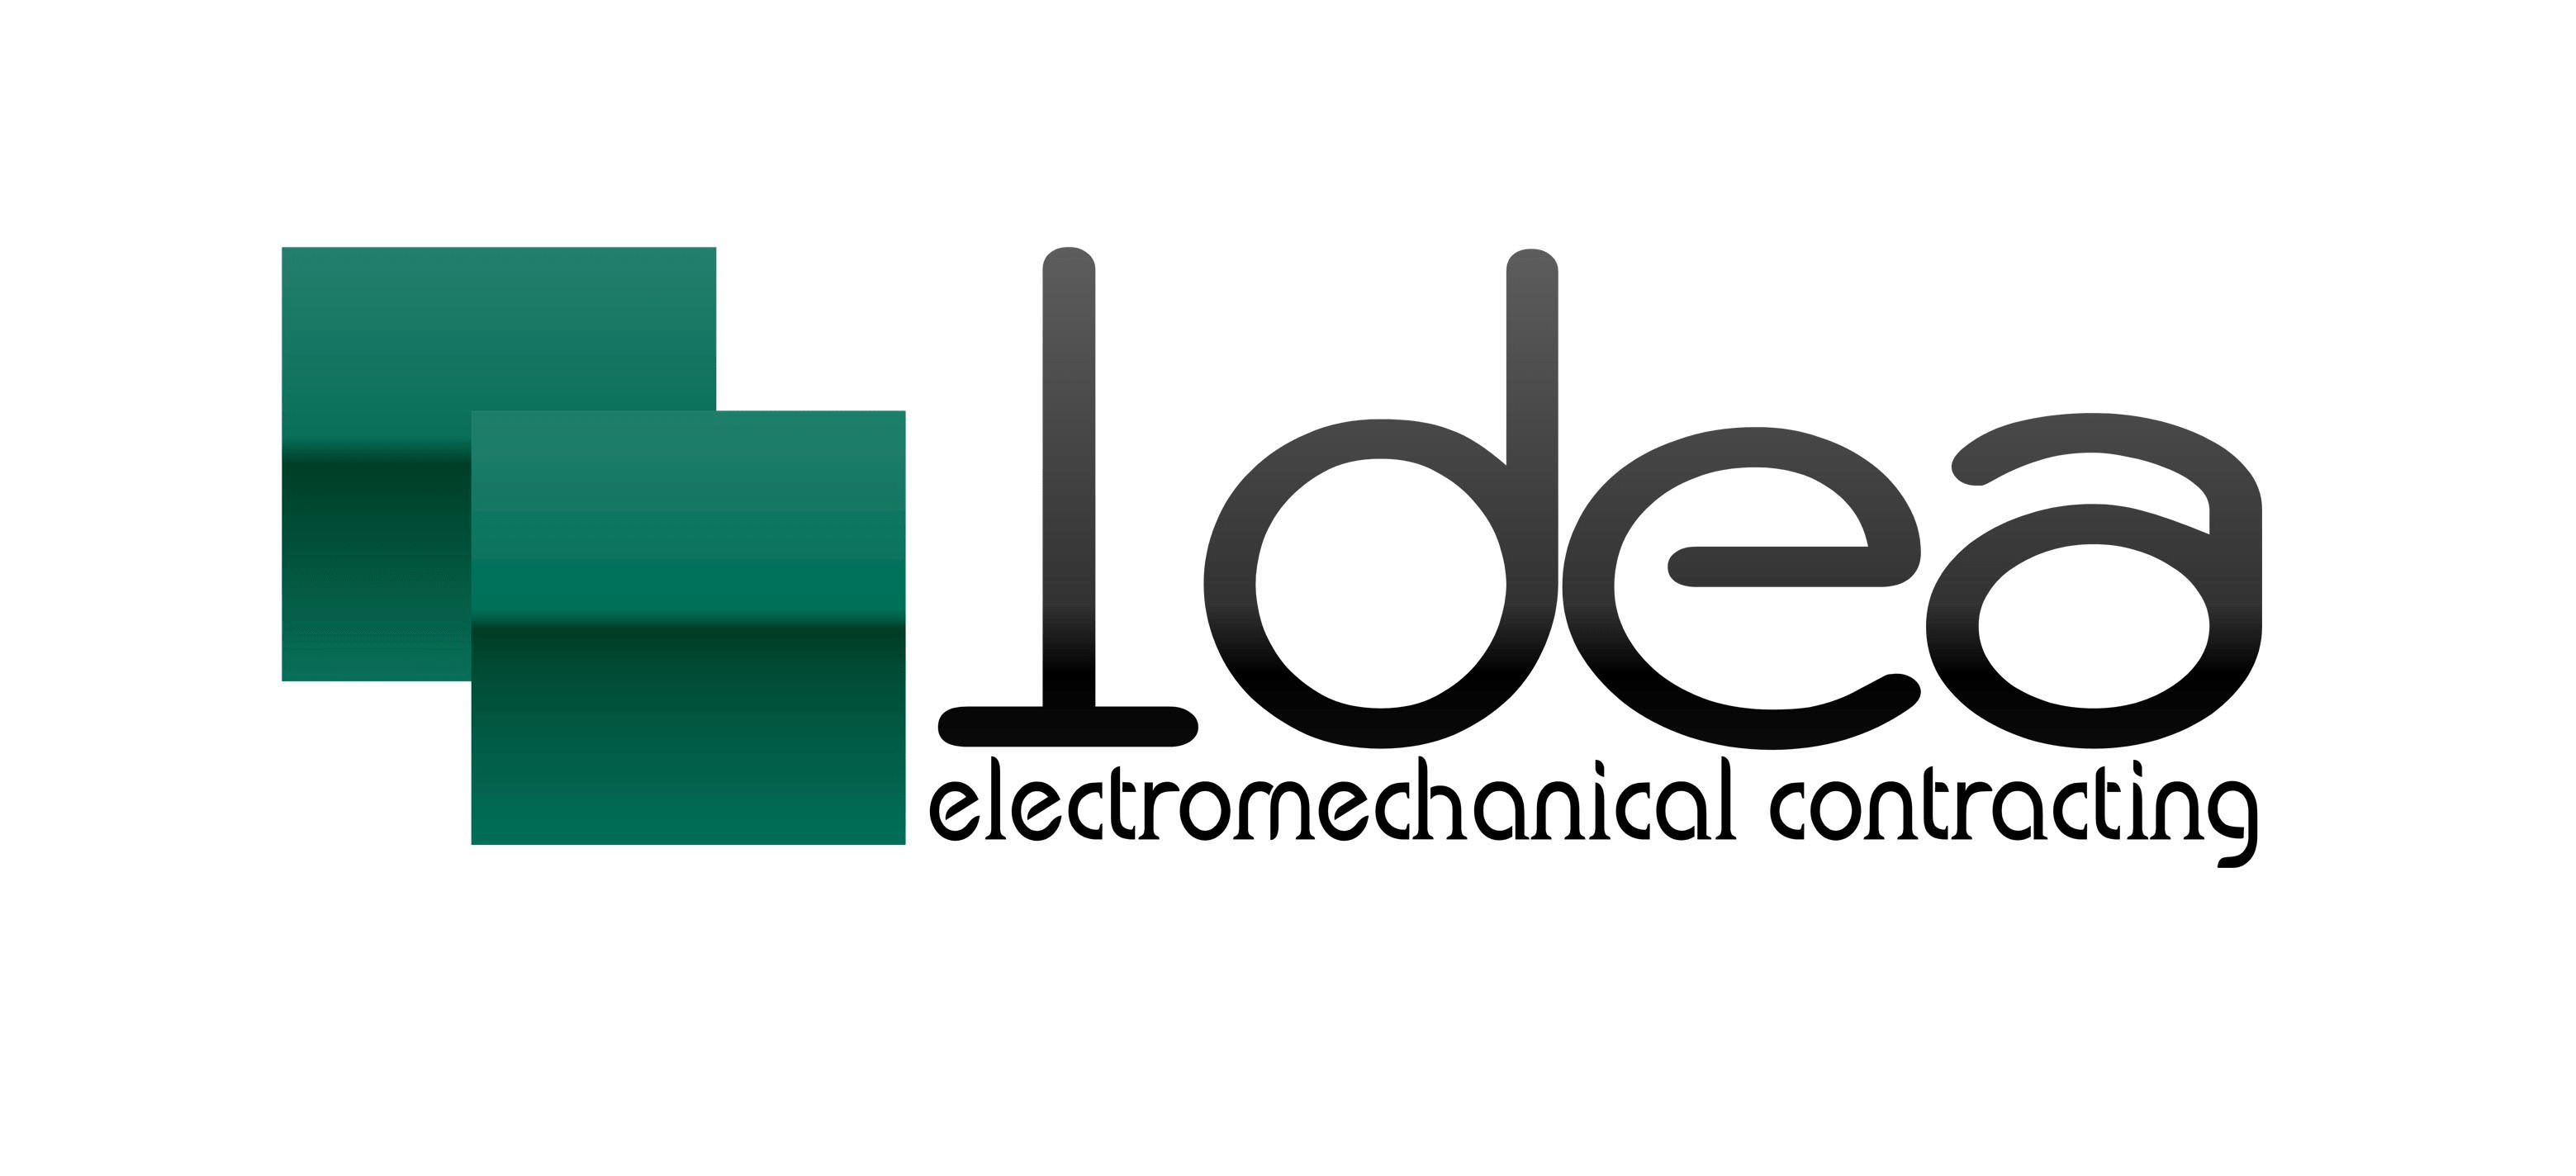 Idea Electromechanical contracting